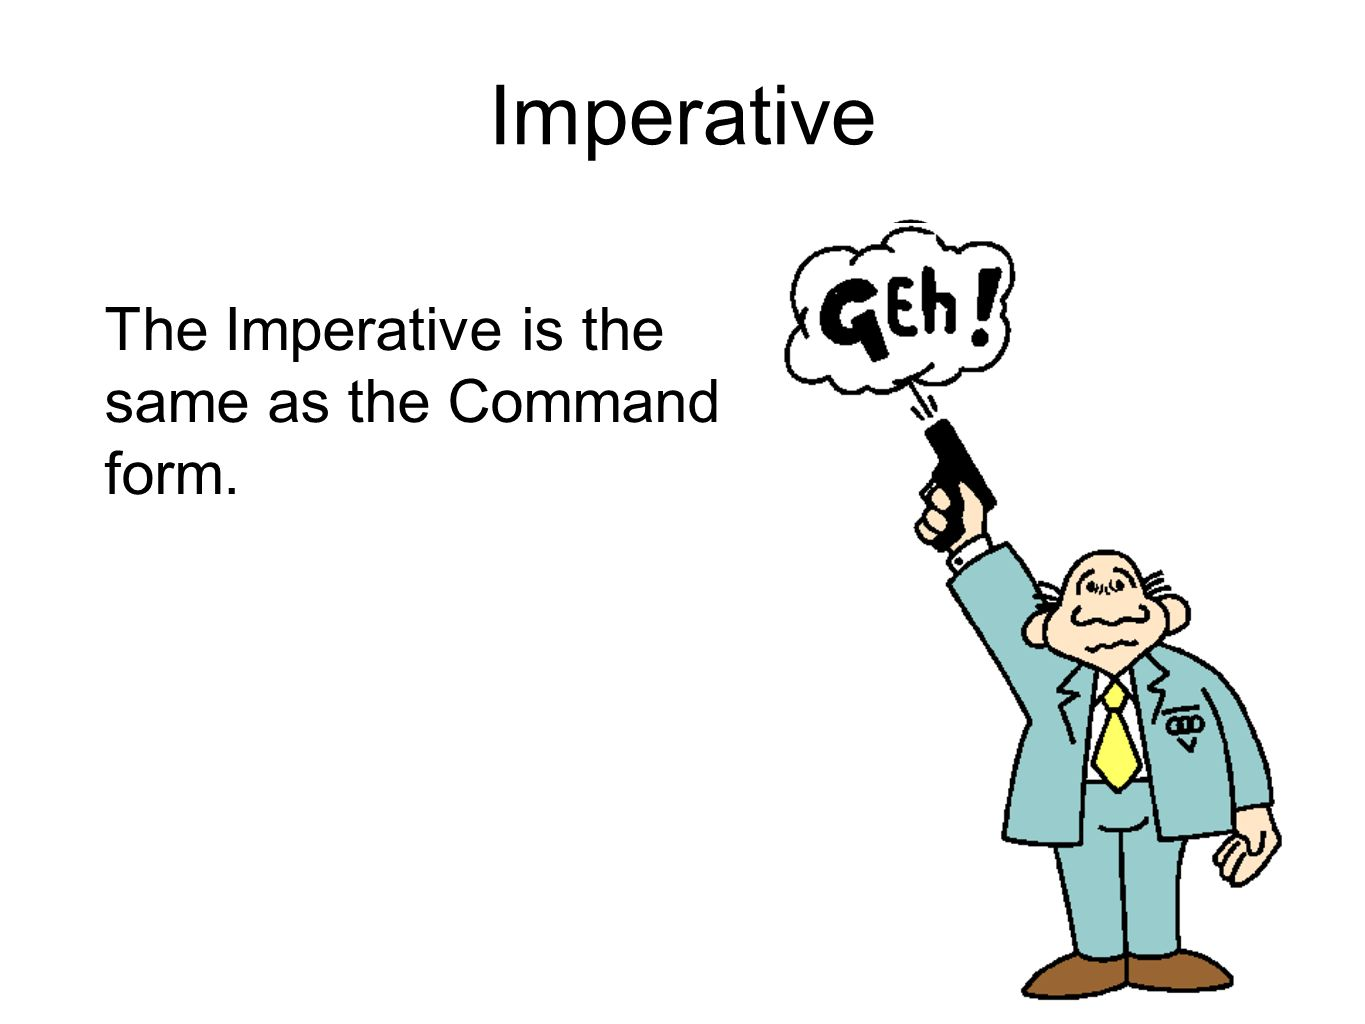 The Imperative is the same as the Command form.